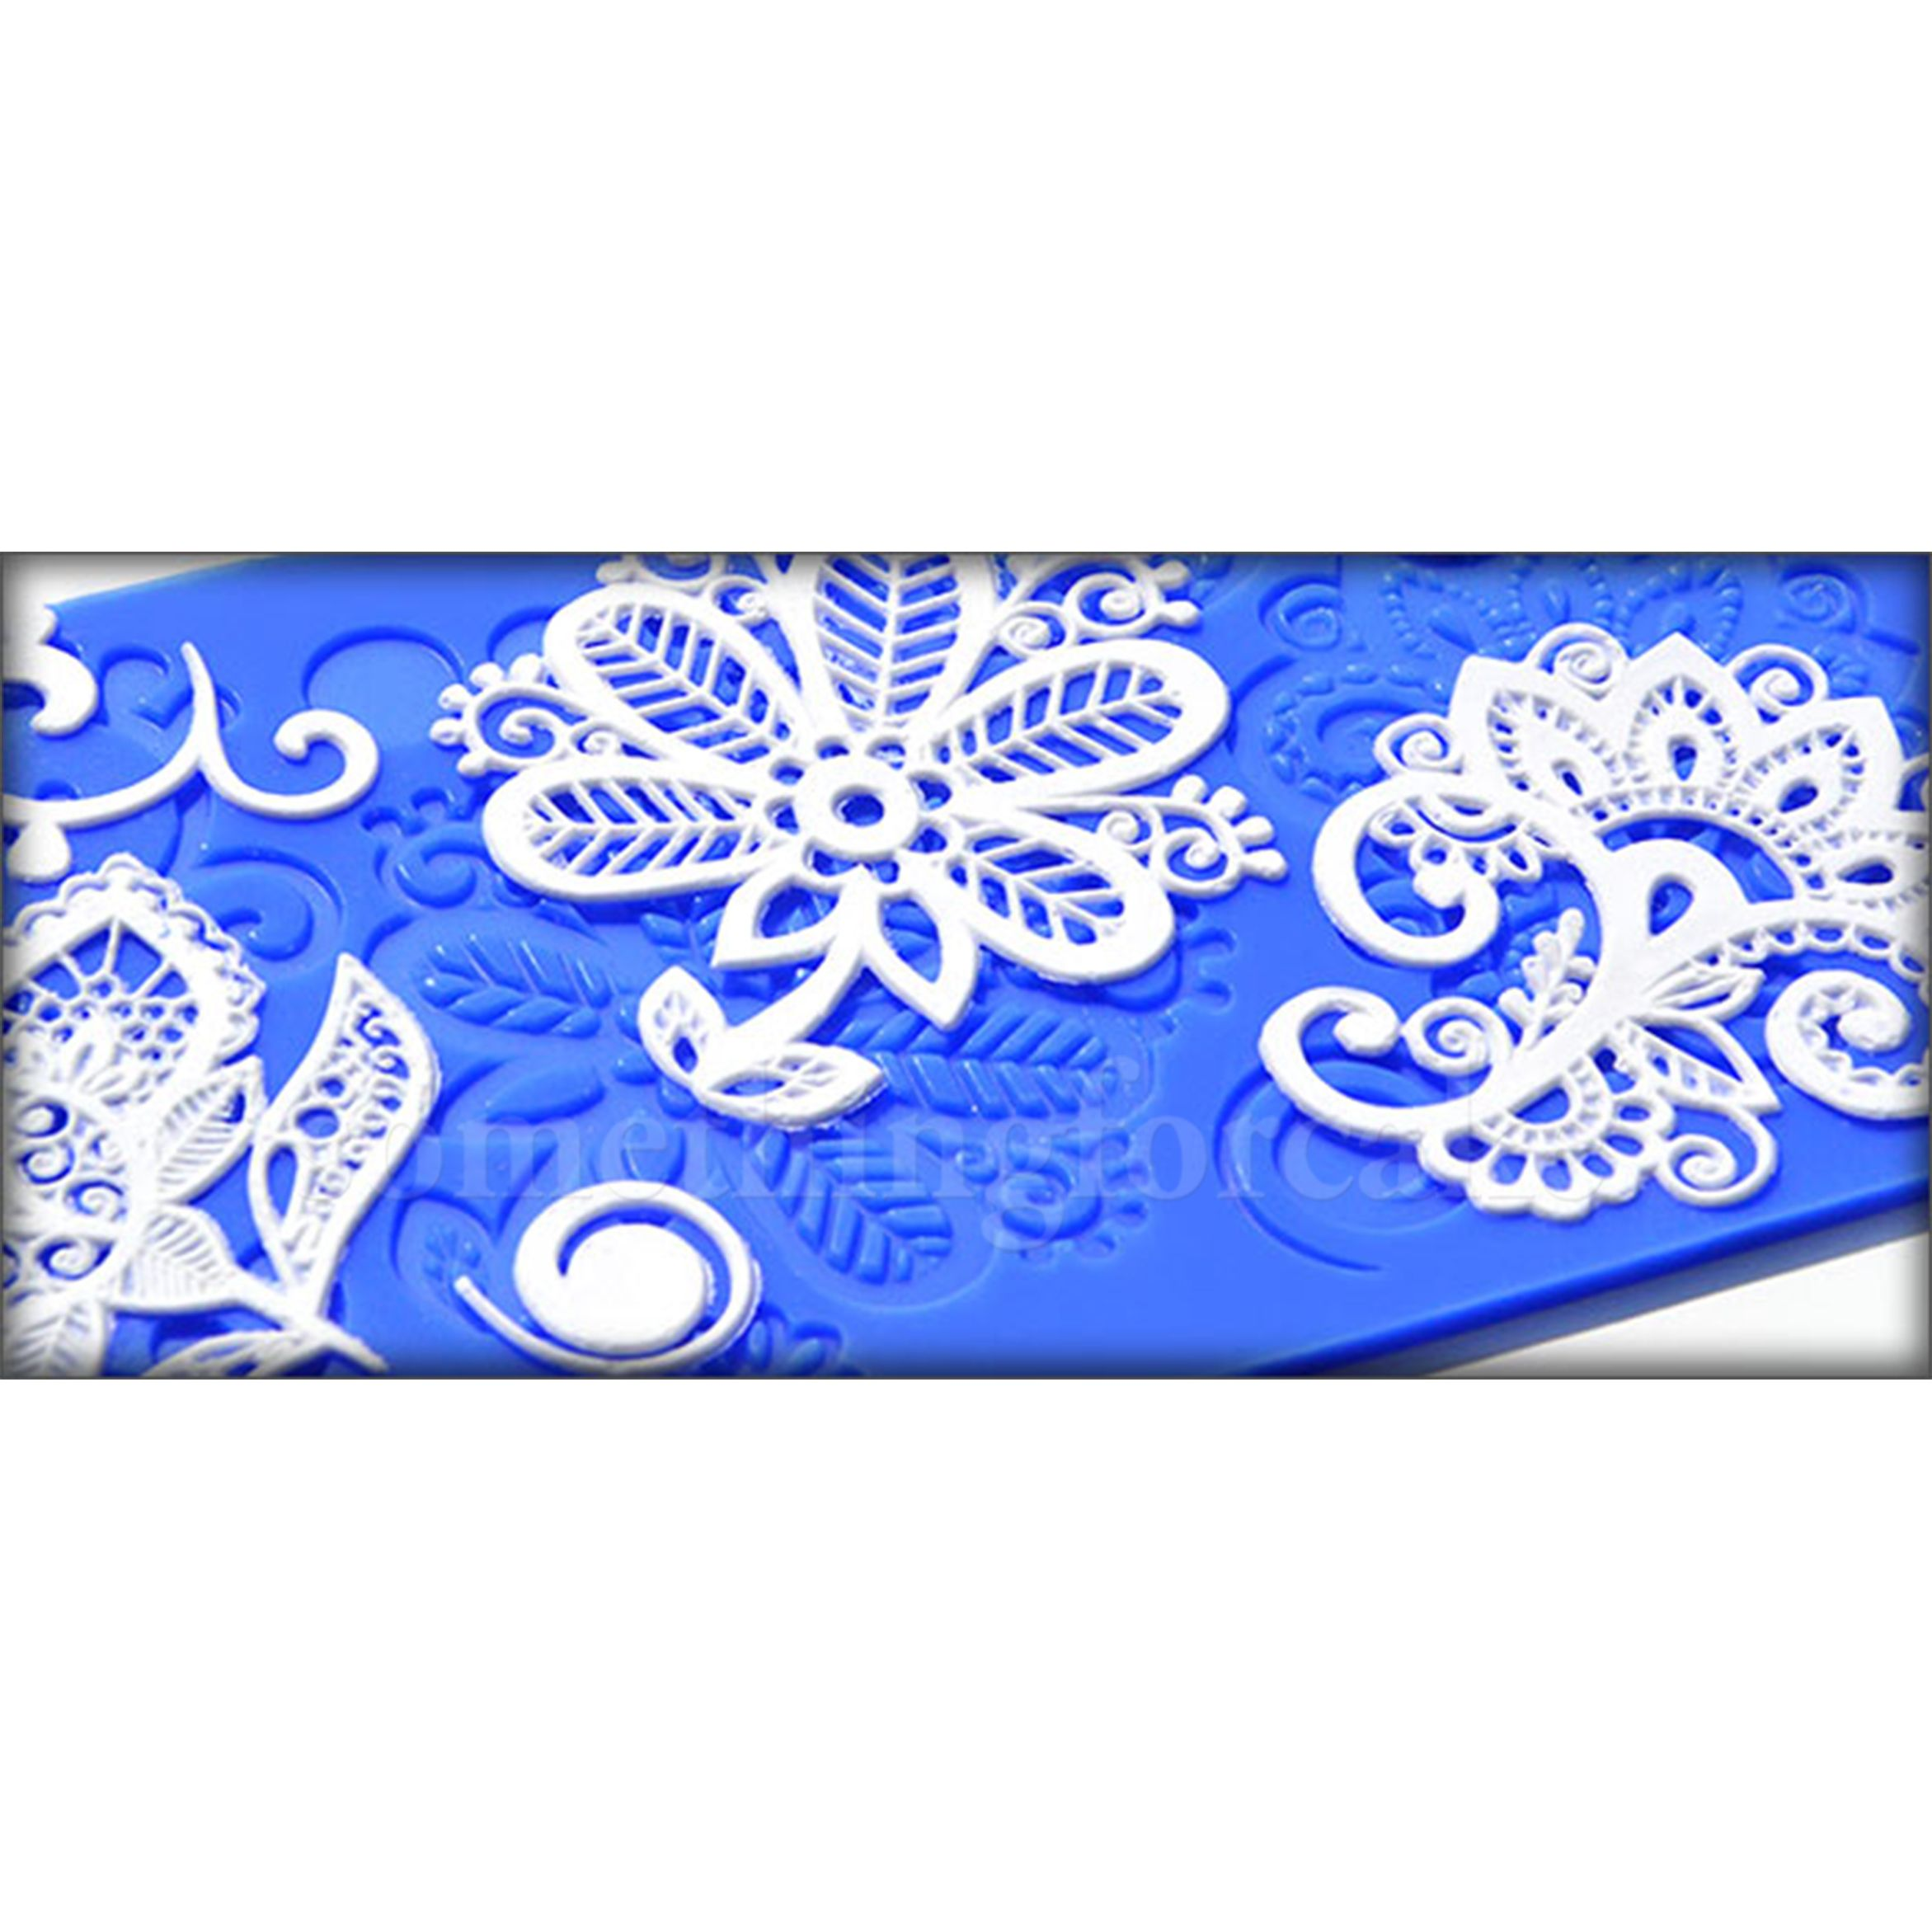 This Lovely Mat Has Four Large Designs For Lacy Fantasy